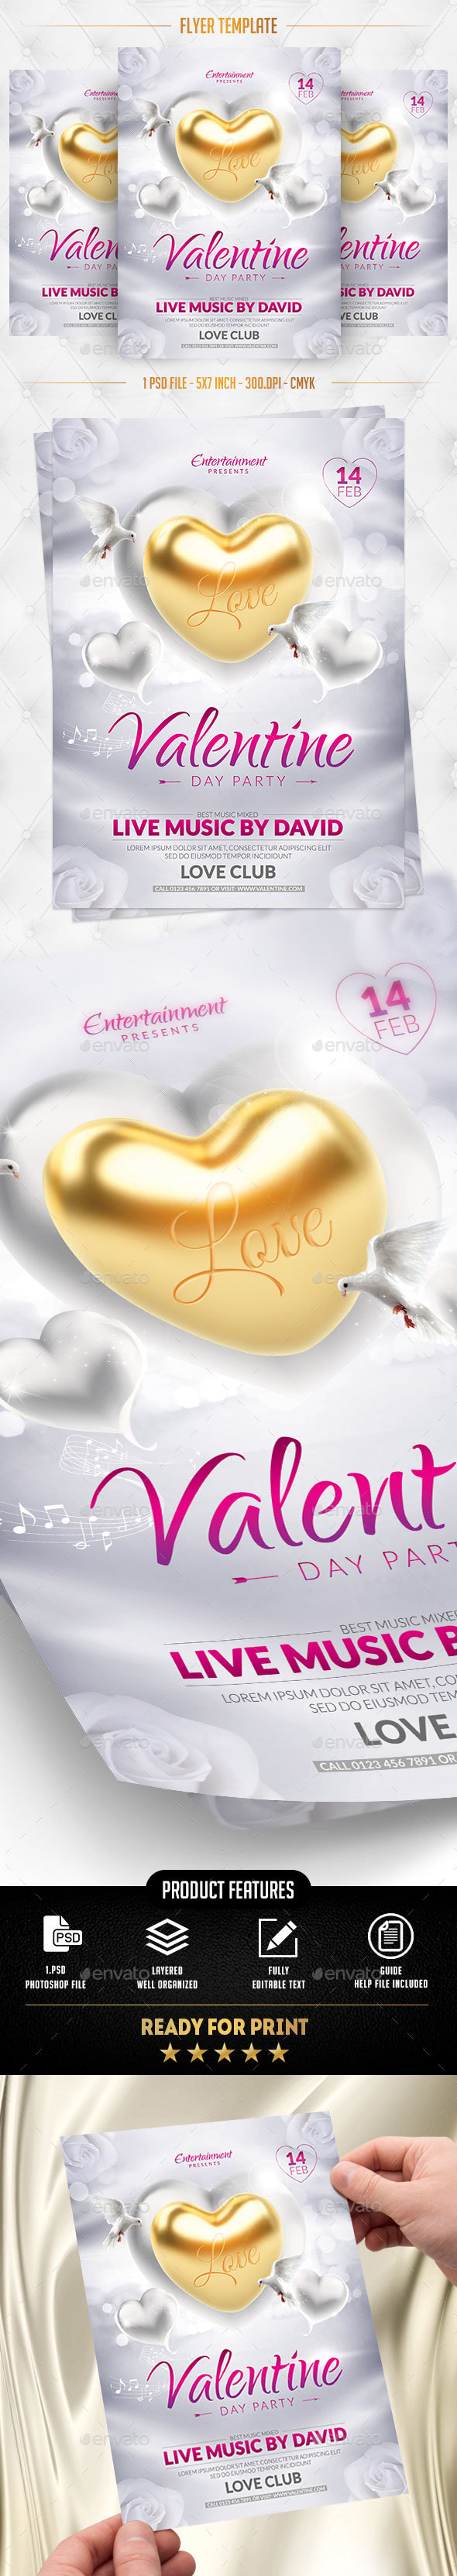 Valentine Day Party Flyer Template - Flyers Print Templates